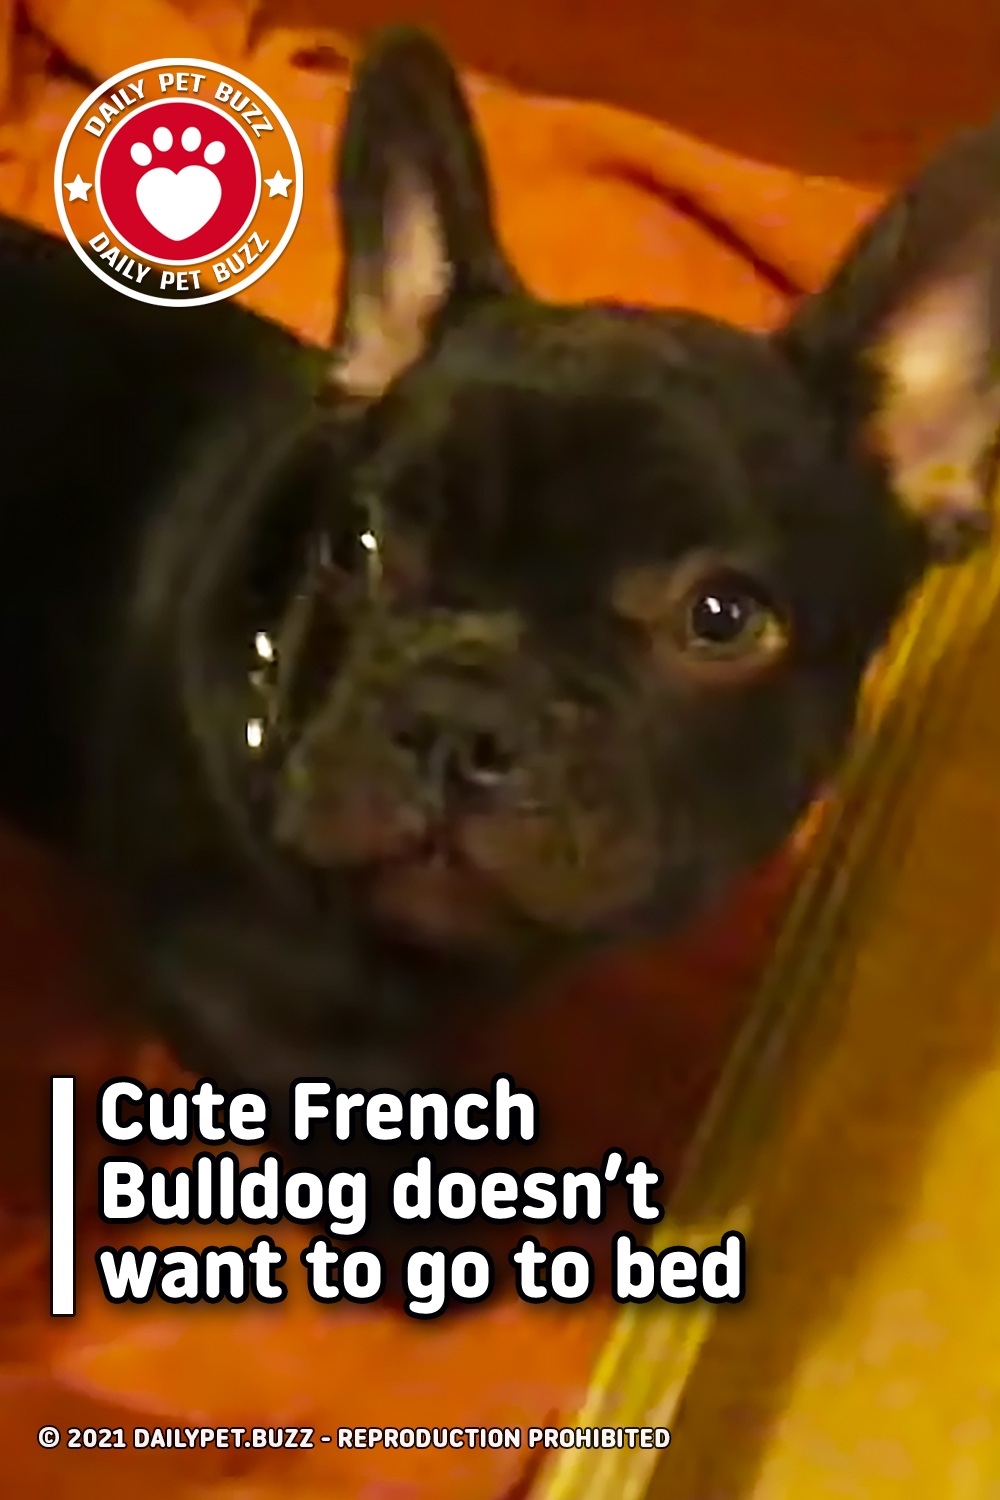 Cute French Bulldog doesn't want to go to bed